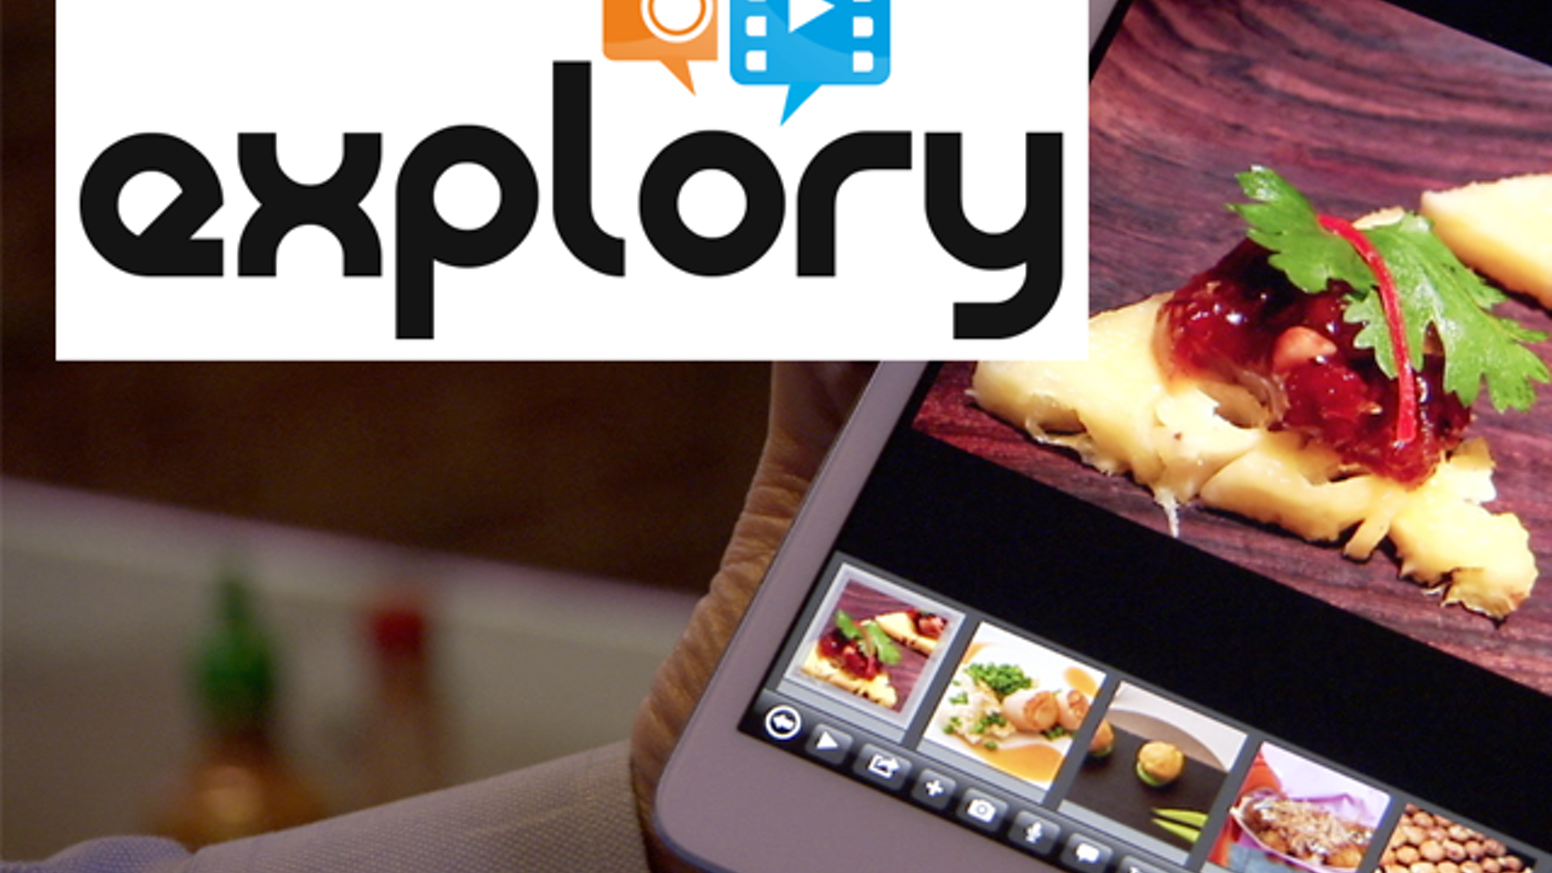 Explory - A mobile storytelling app by the creators of Flash